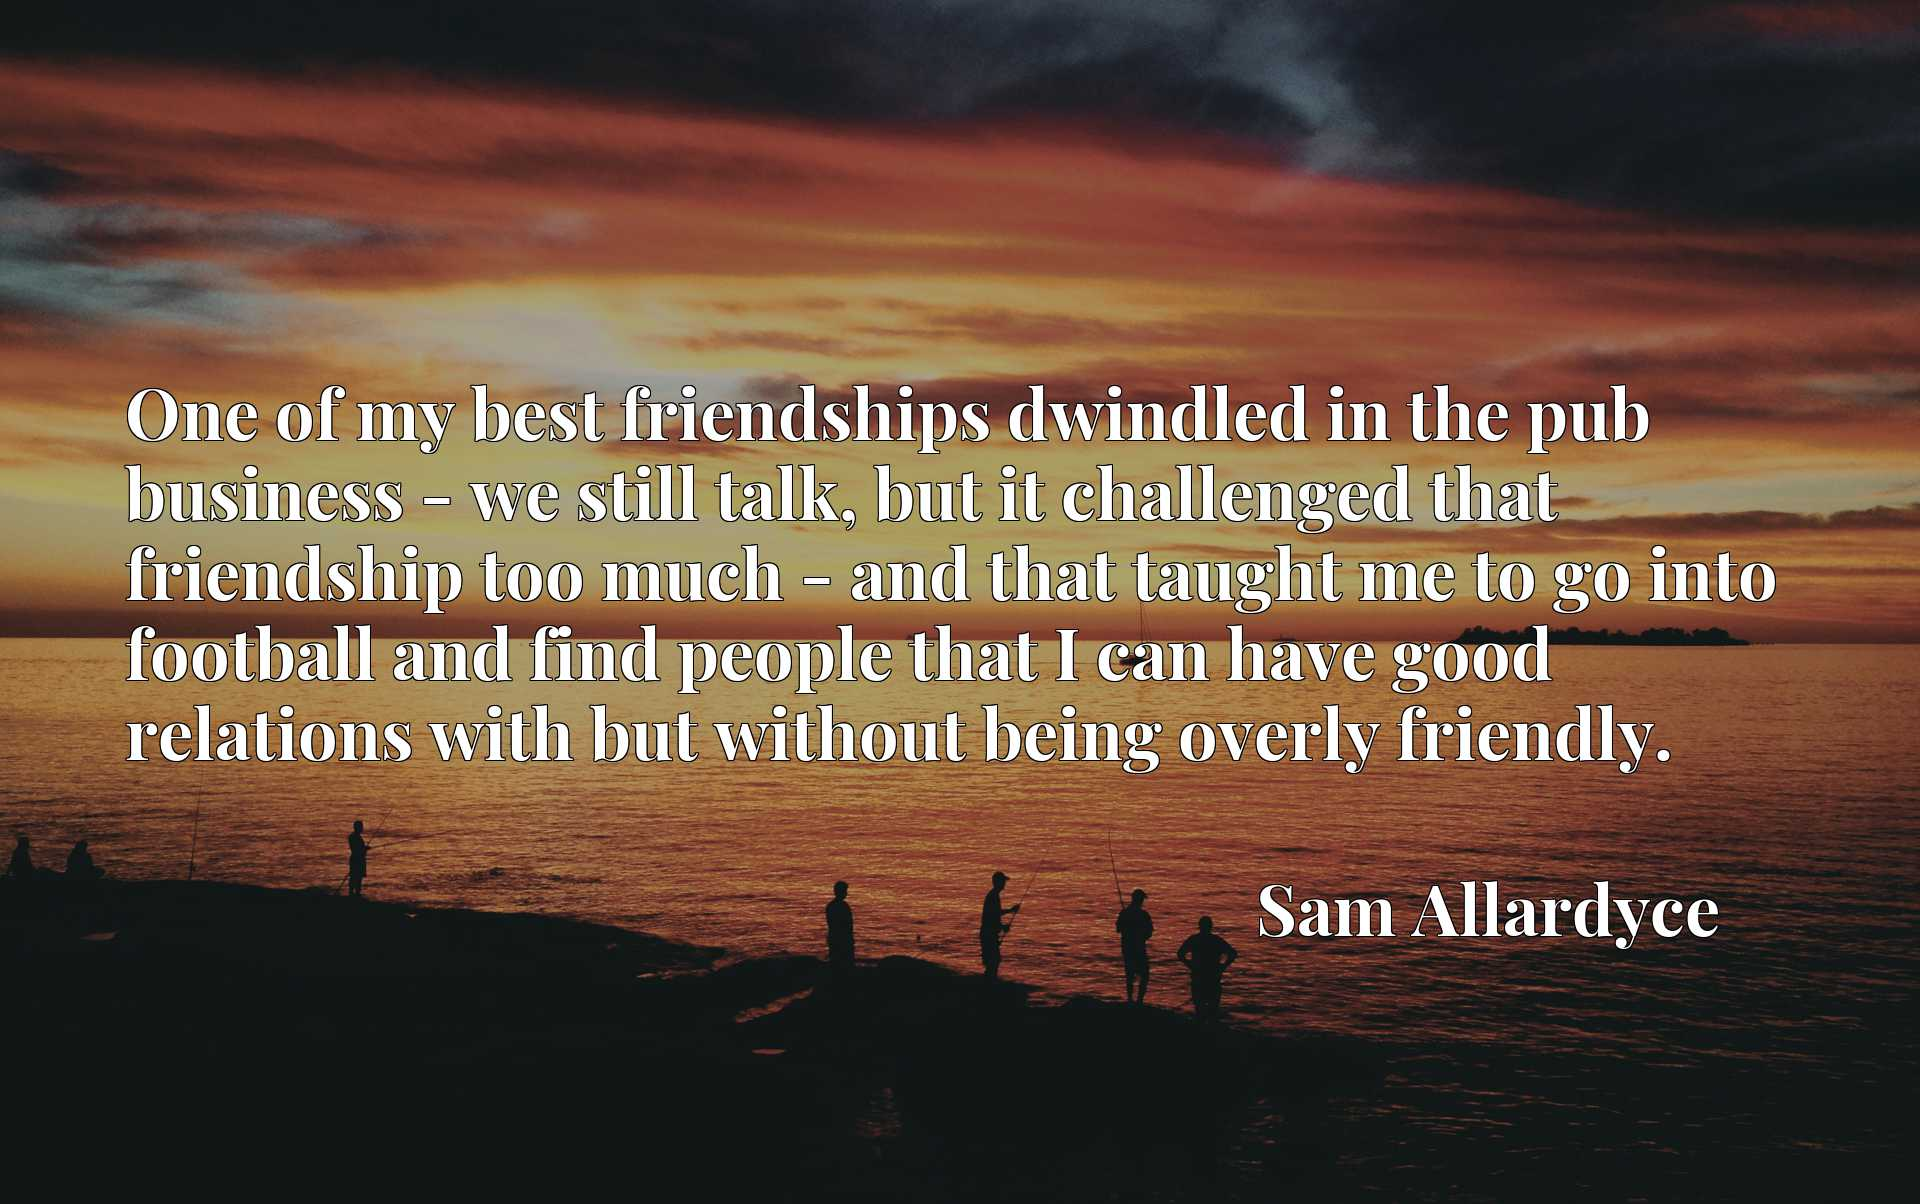 One of my best friendships dwindled in the pub business - we still talk, but it challenged that friendship too much - and that taught me to go into football and find people that I can have good relations with but without being overly friendly.